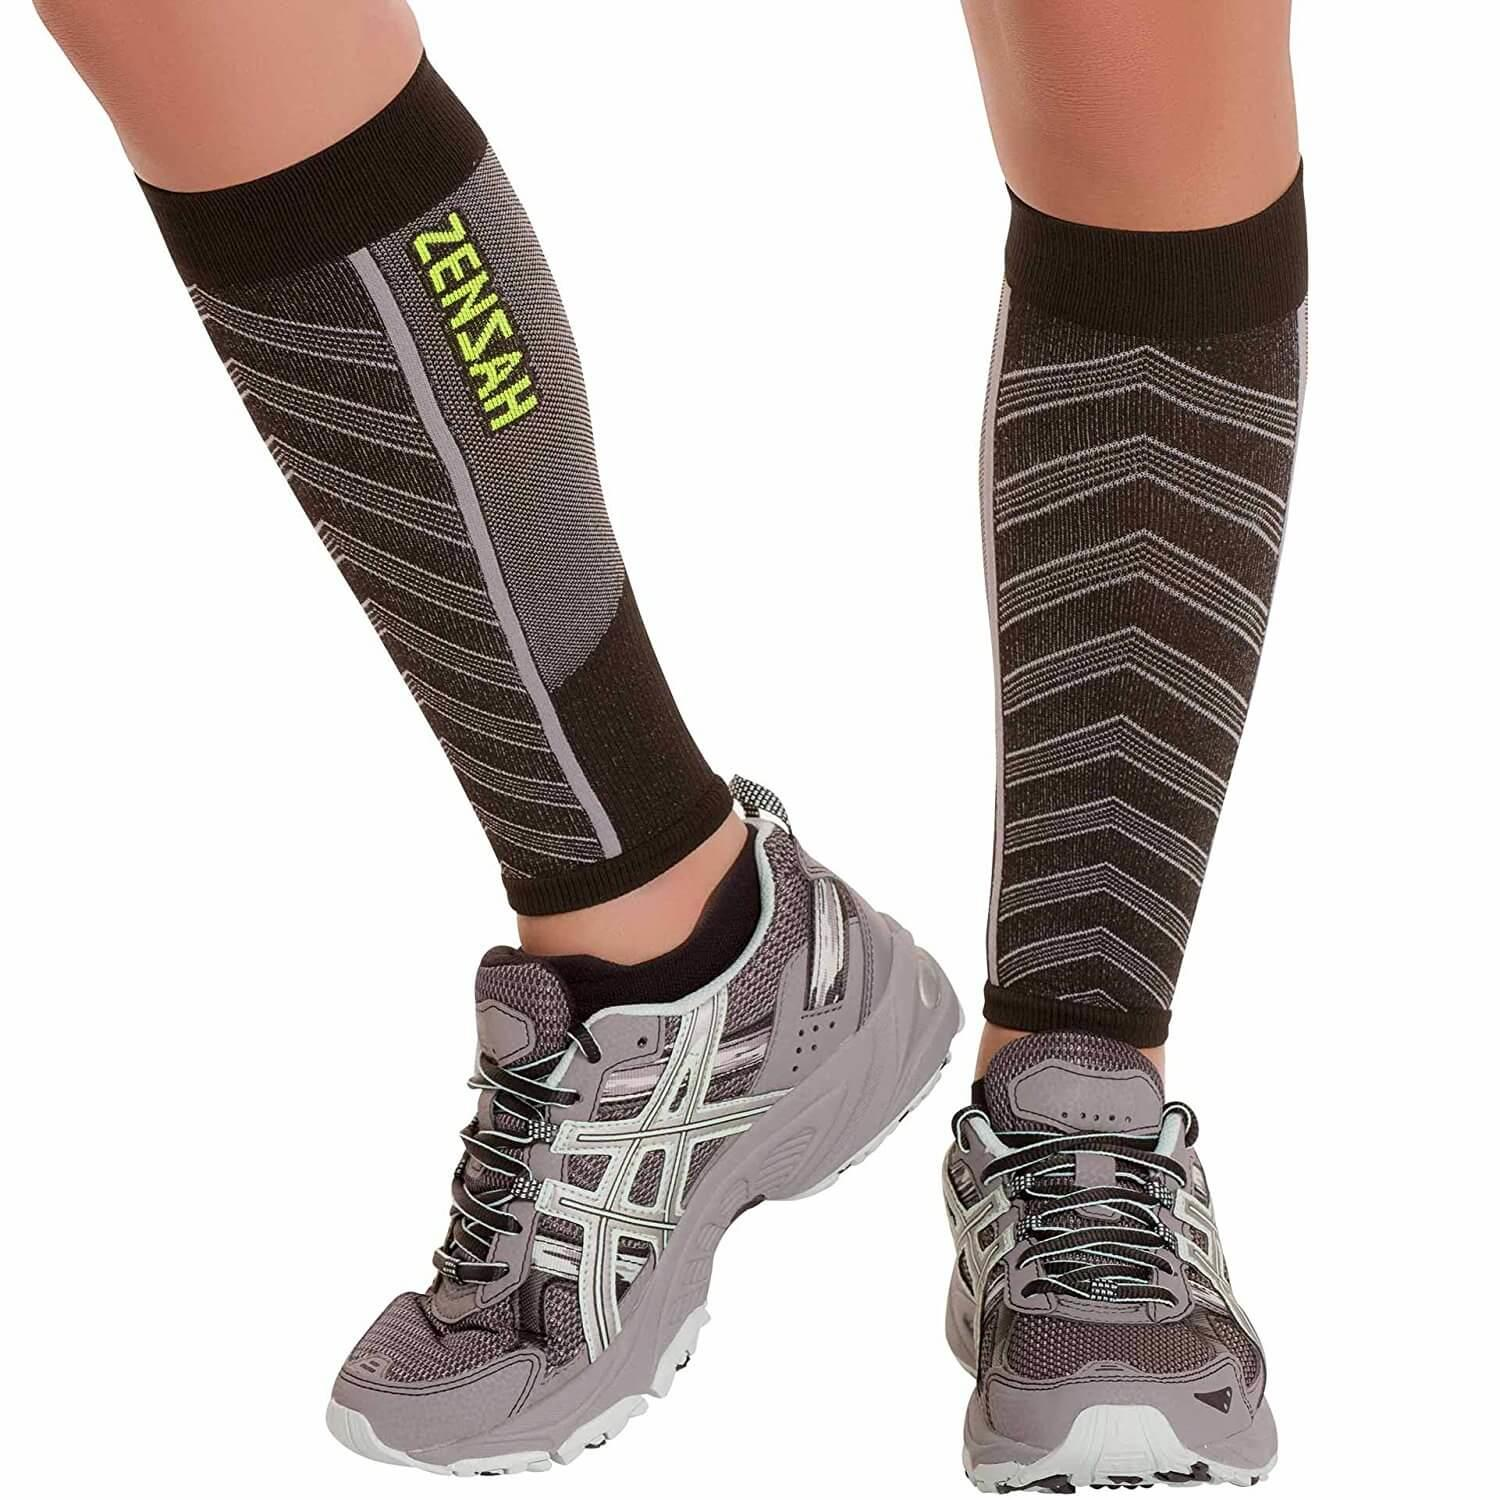 2. Zensah Featherweight Compression Leg Sleeves